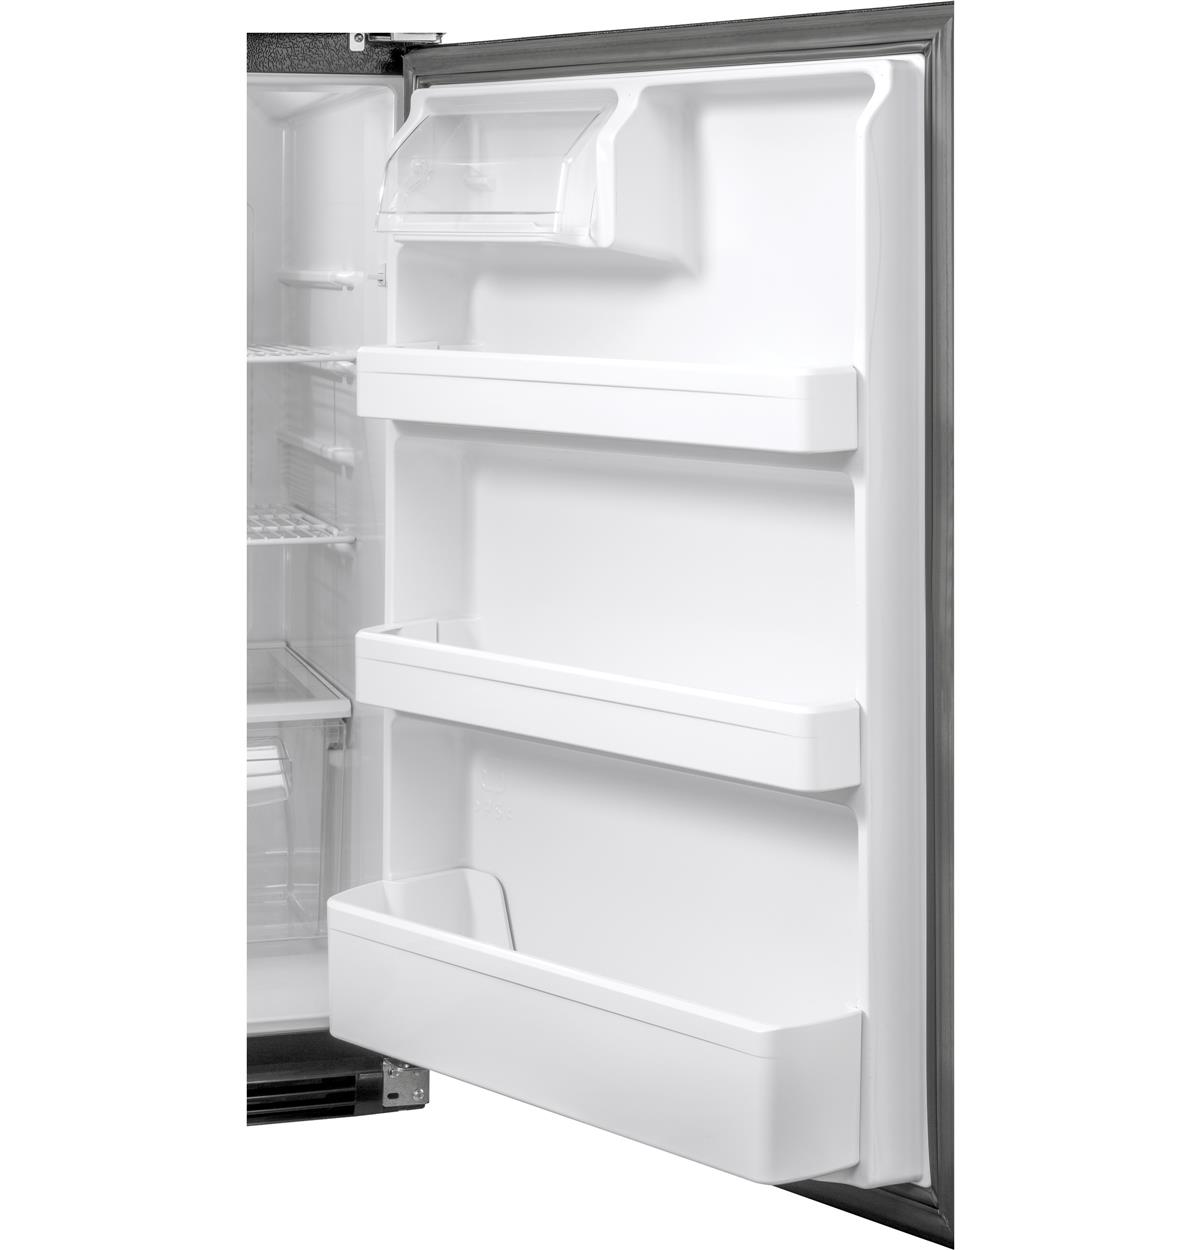 White Top-Freezer HRT18RCWW Feature Photos